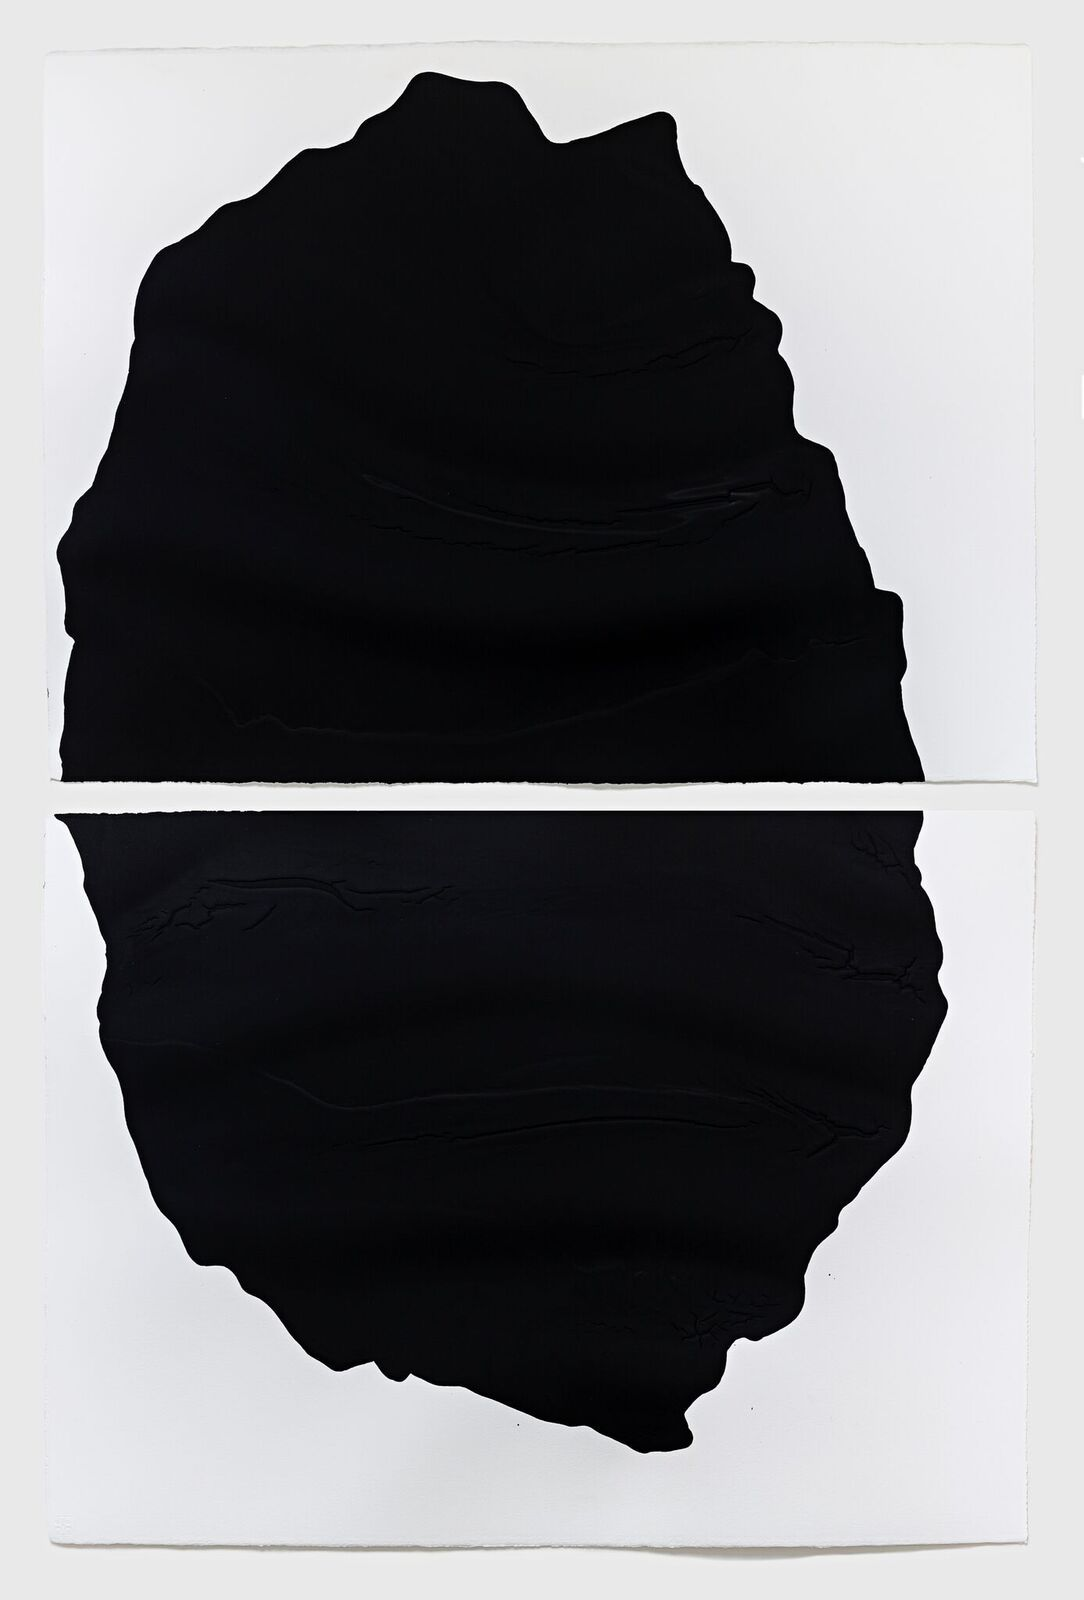 'Cleave', 2018, diptych, household acrylic on Saunders Waterford 425gsm paper, each 56 x 76 cm